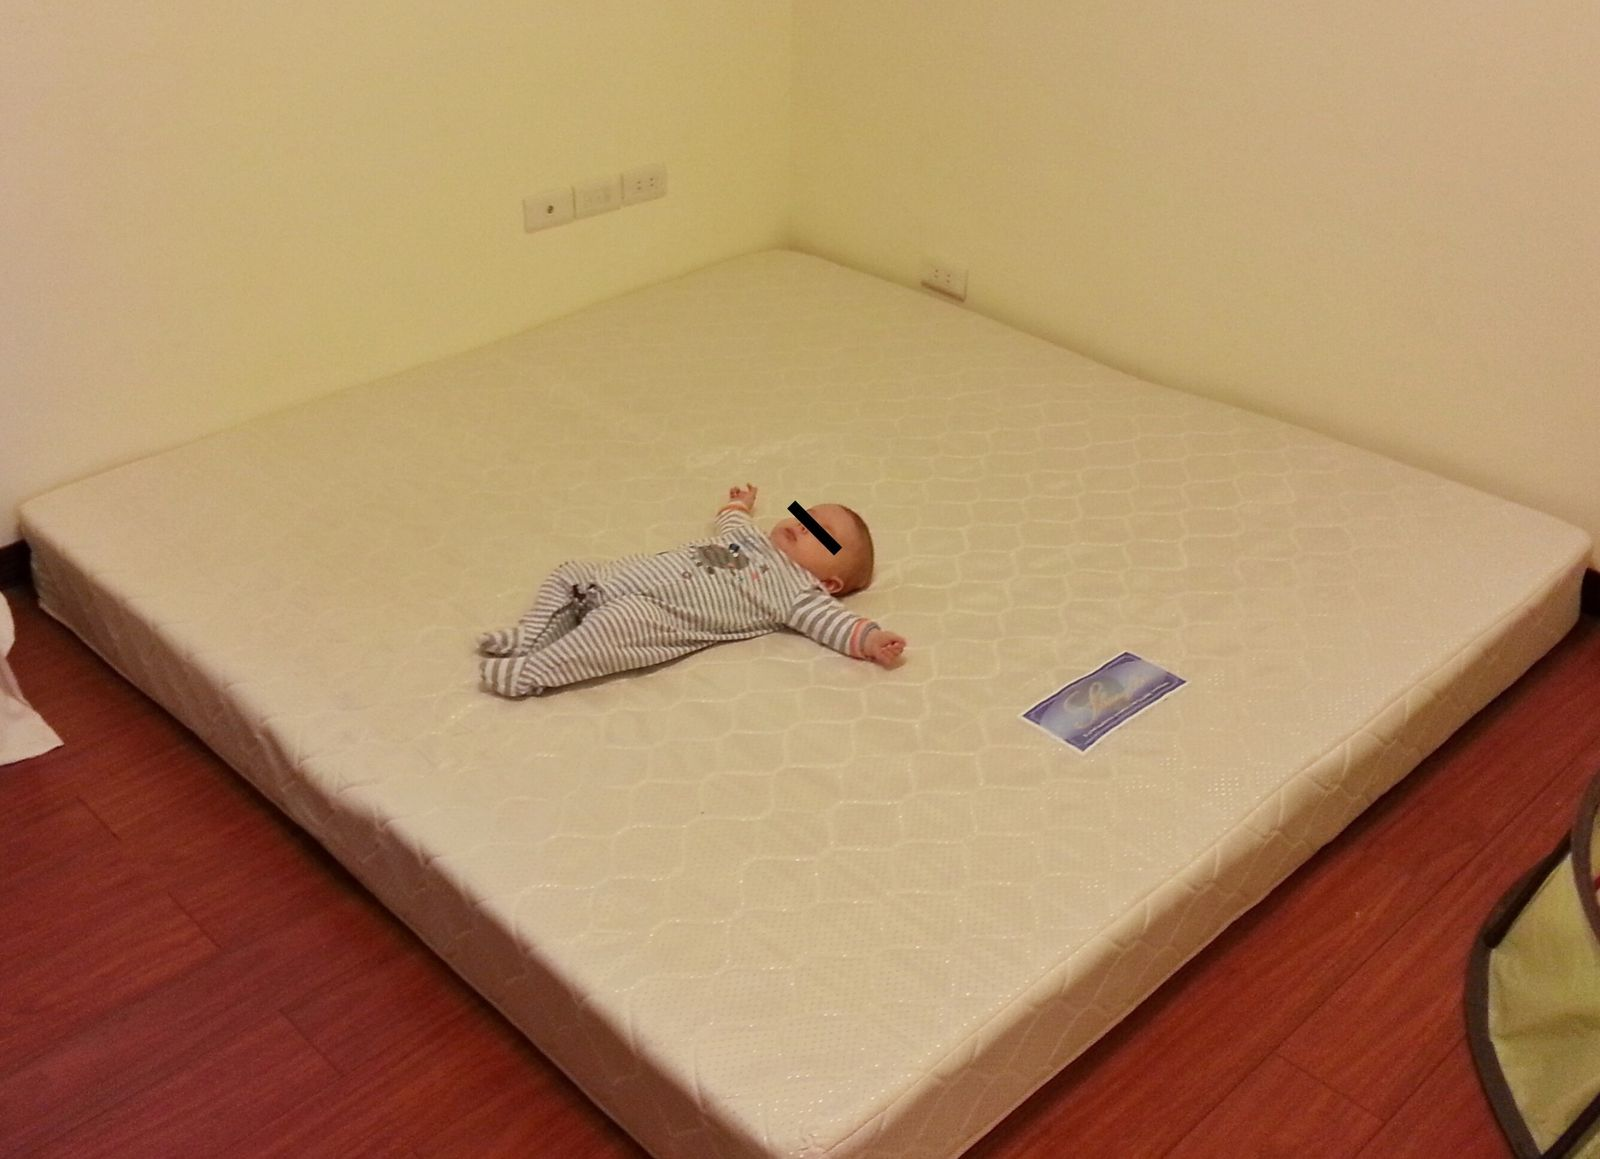 Dimensions In Centimeter 180190 This Mattress Does Not Fit With The Rykene Bed Frame Baby On Picture Is Included